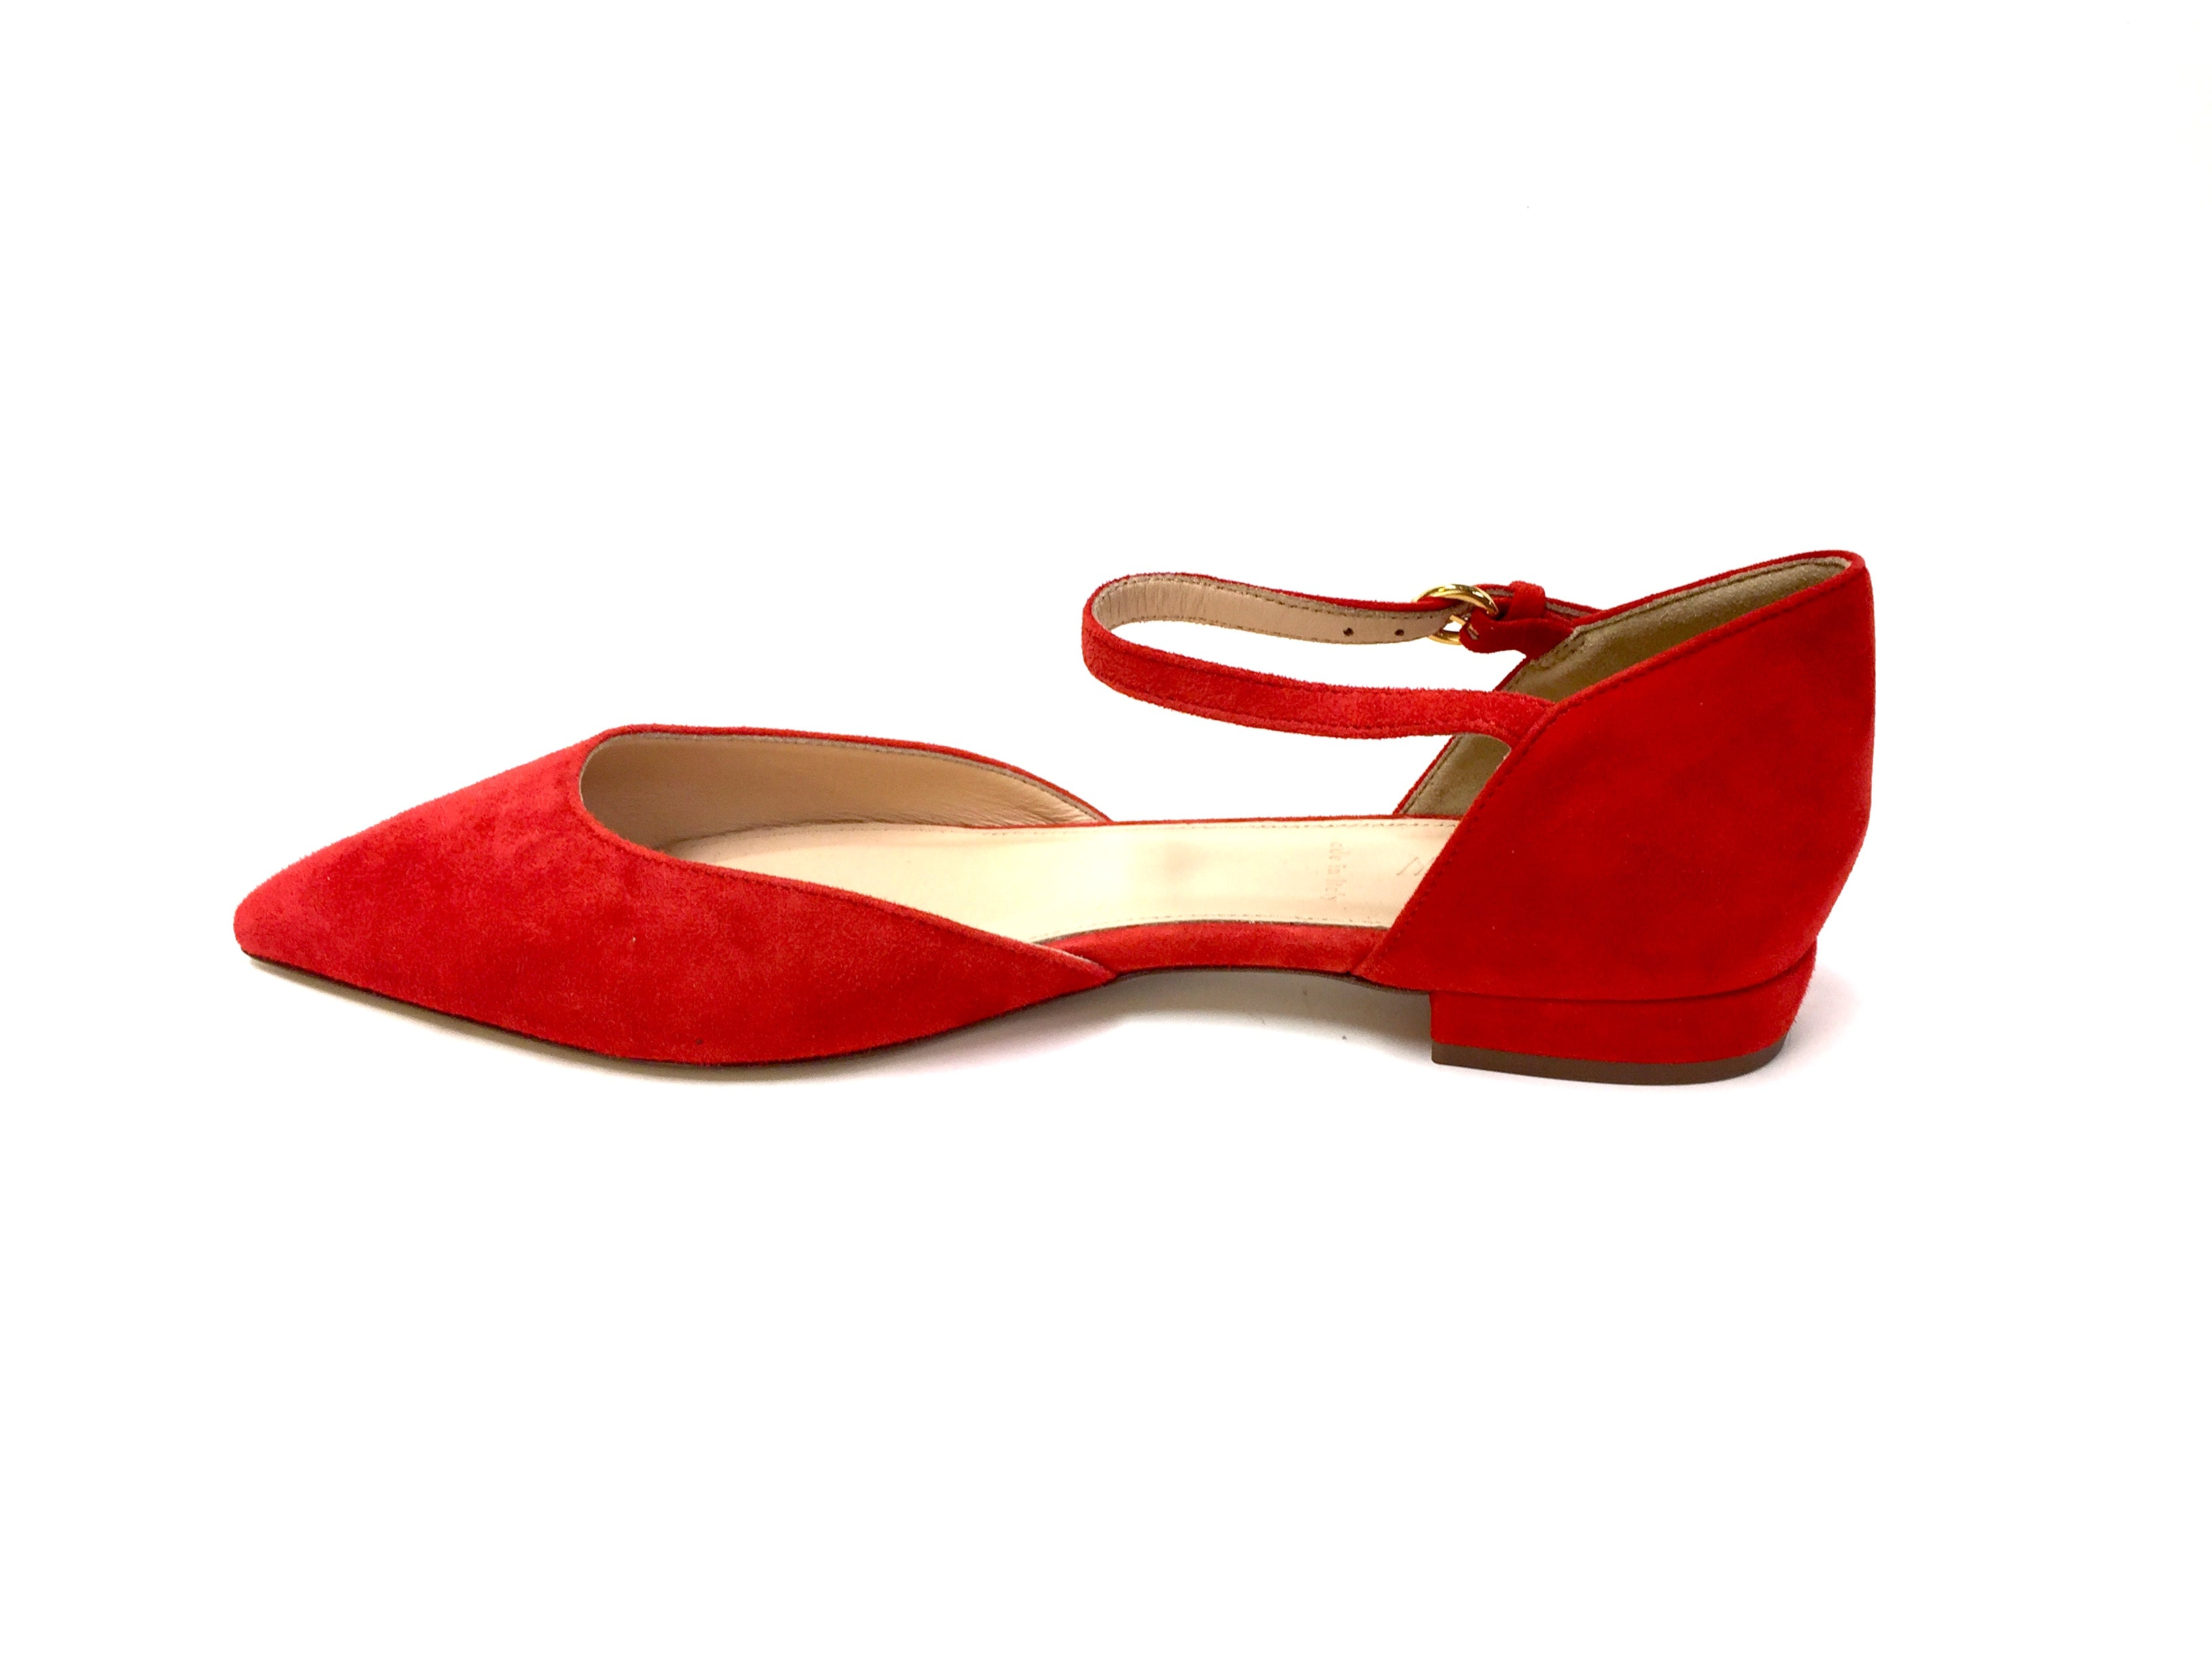 J Crew Red Suede Ankle Strap D Orsay Flats Shoes Size 7